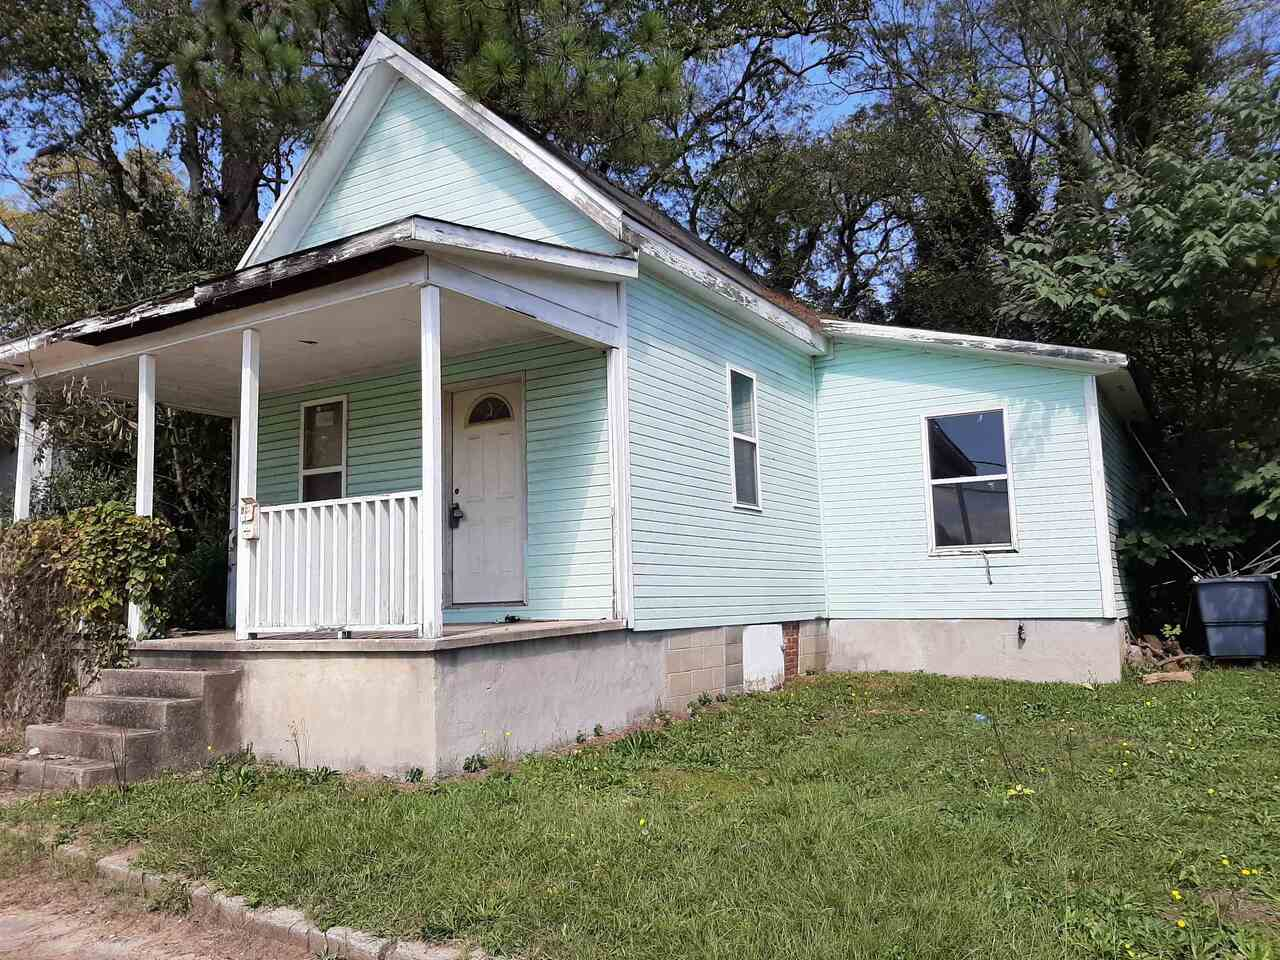 2-Bedroom House In Tindall Heights Historic District